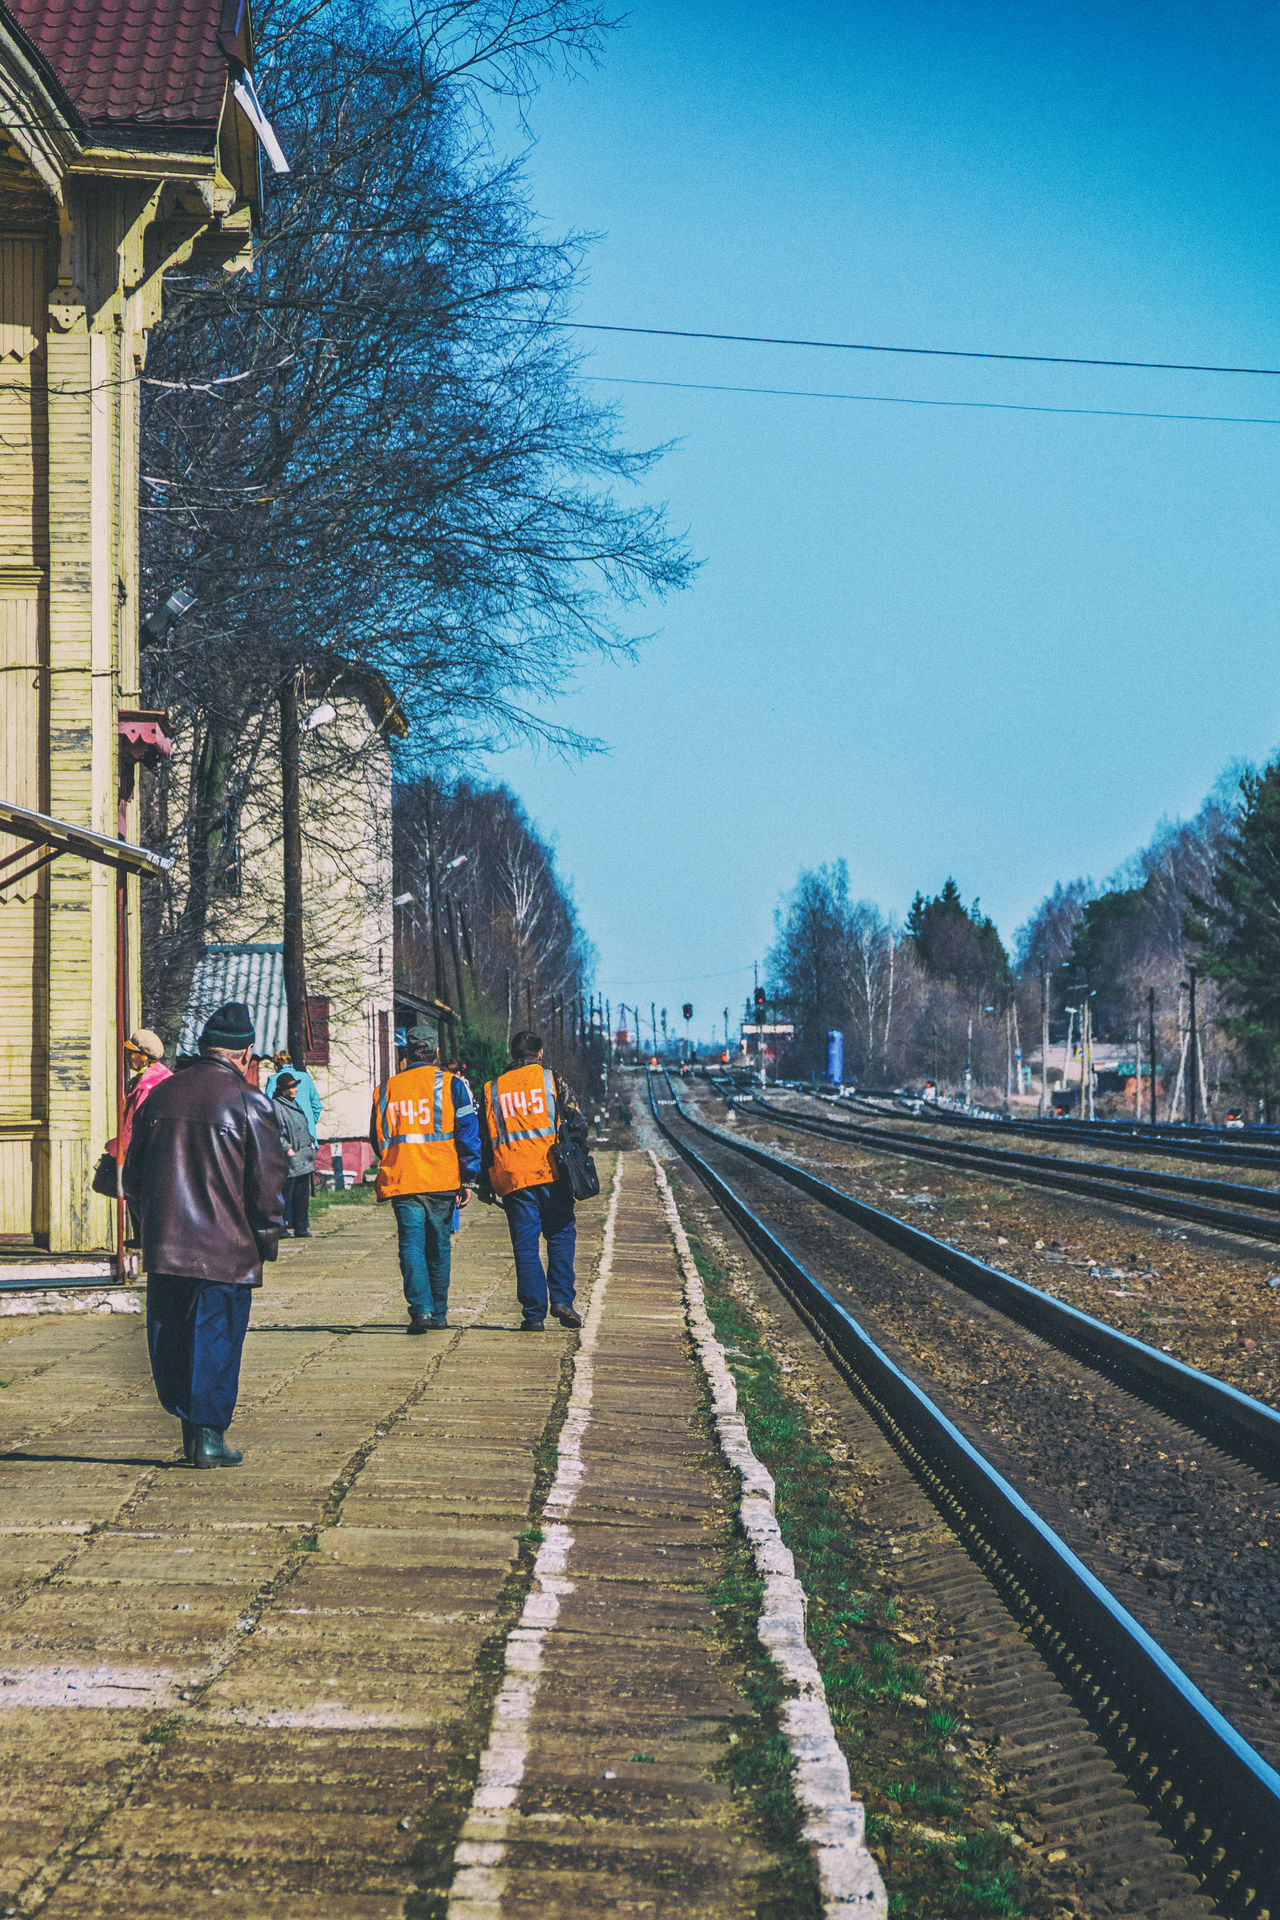 On the platform of the railway station, a small provincial town. Adult Architecture Blue Building Exterior Built Structure Day Large Group Of People Lifestyles Men Outdoors People Rail Railroad Railroad Station Railway Real People Sky The Way Forward Transportation Tree Walking